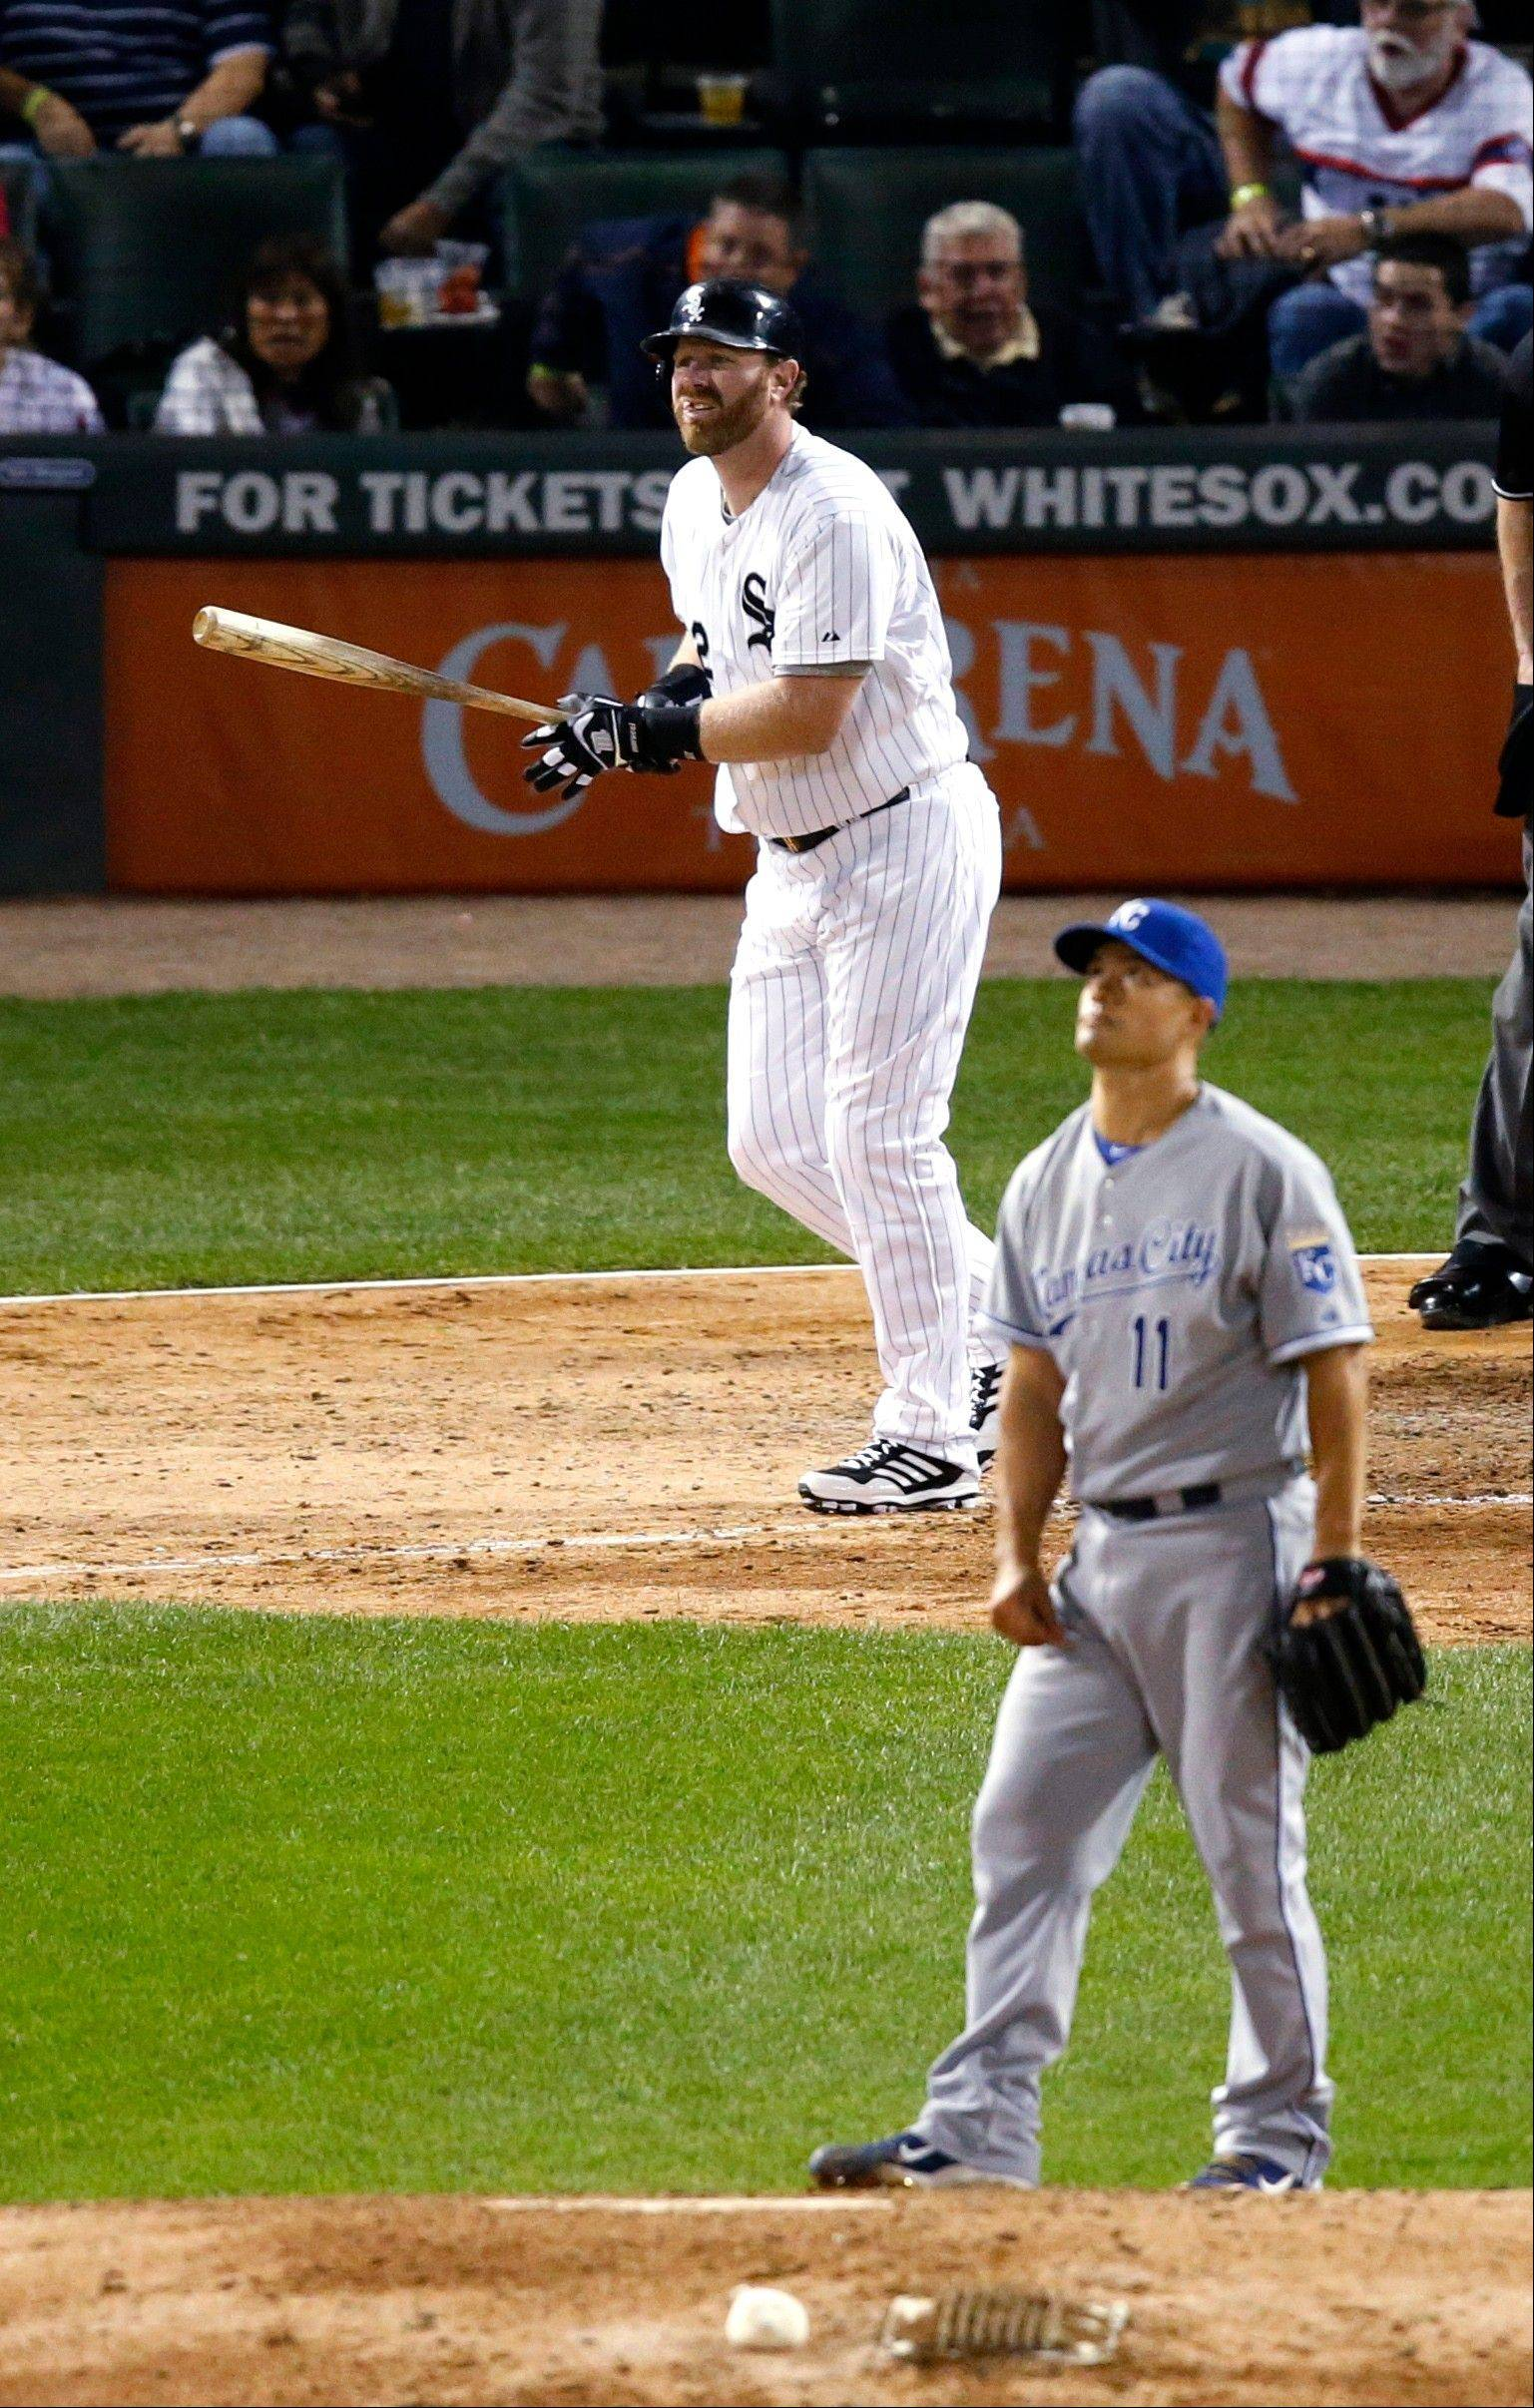 The White Sox's Adam Dunn watches his home run with Kansas City Royals starting pitcher Jeremy Guthrie during Thursday night's game at U.S. Cellular Field. The Sox lost 3-2.